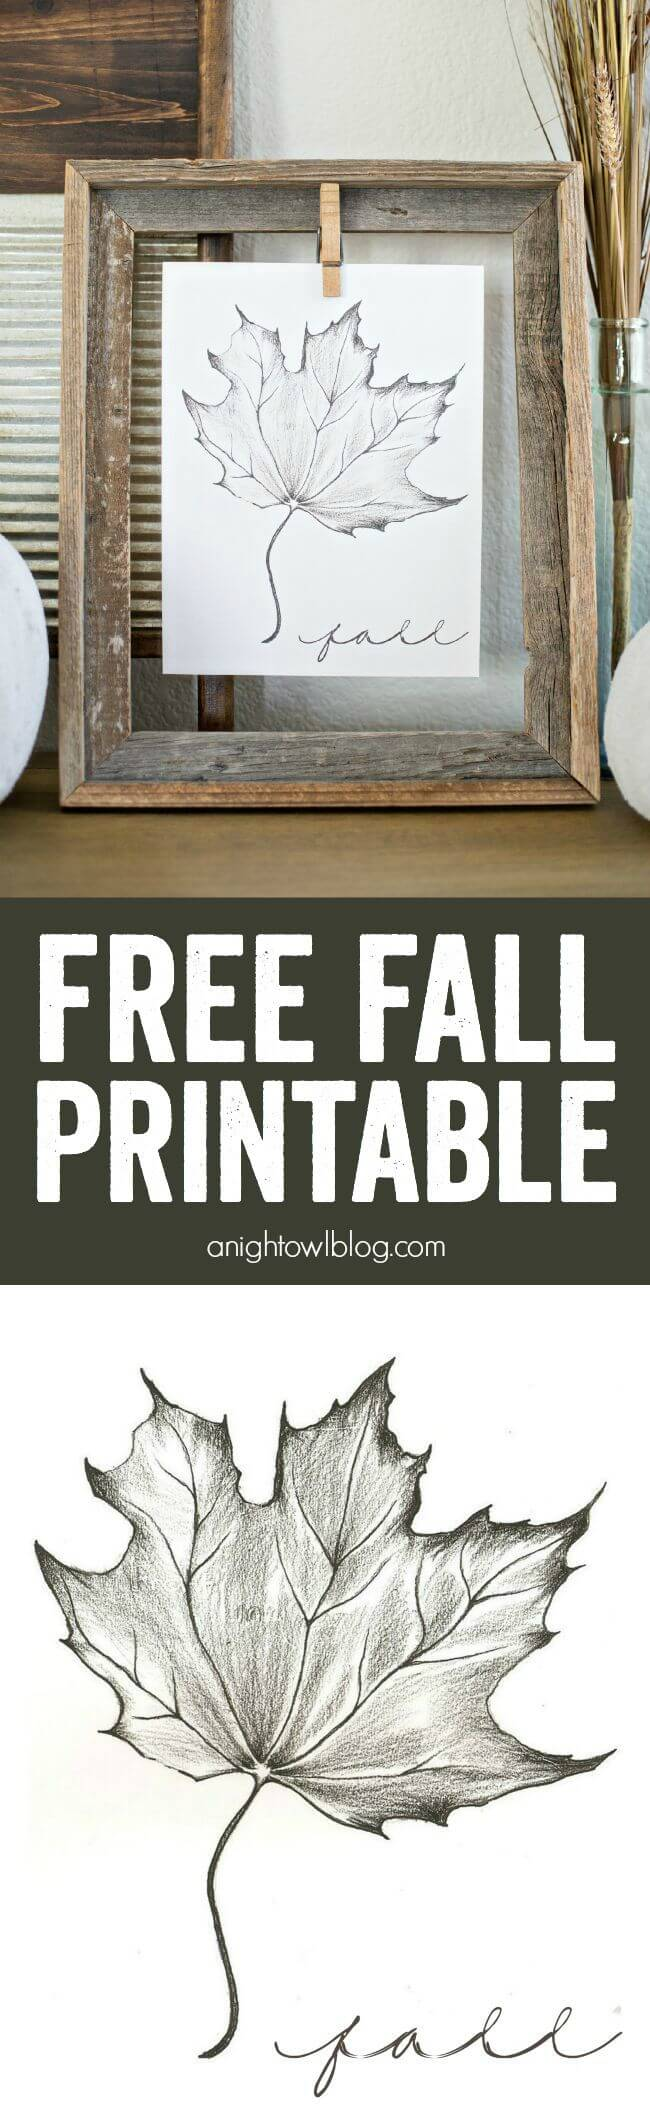 Fall printable | DIY Fall-Inspired Home Decorations With Leaves - FarmFoodFamily